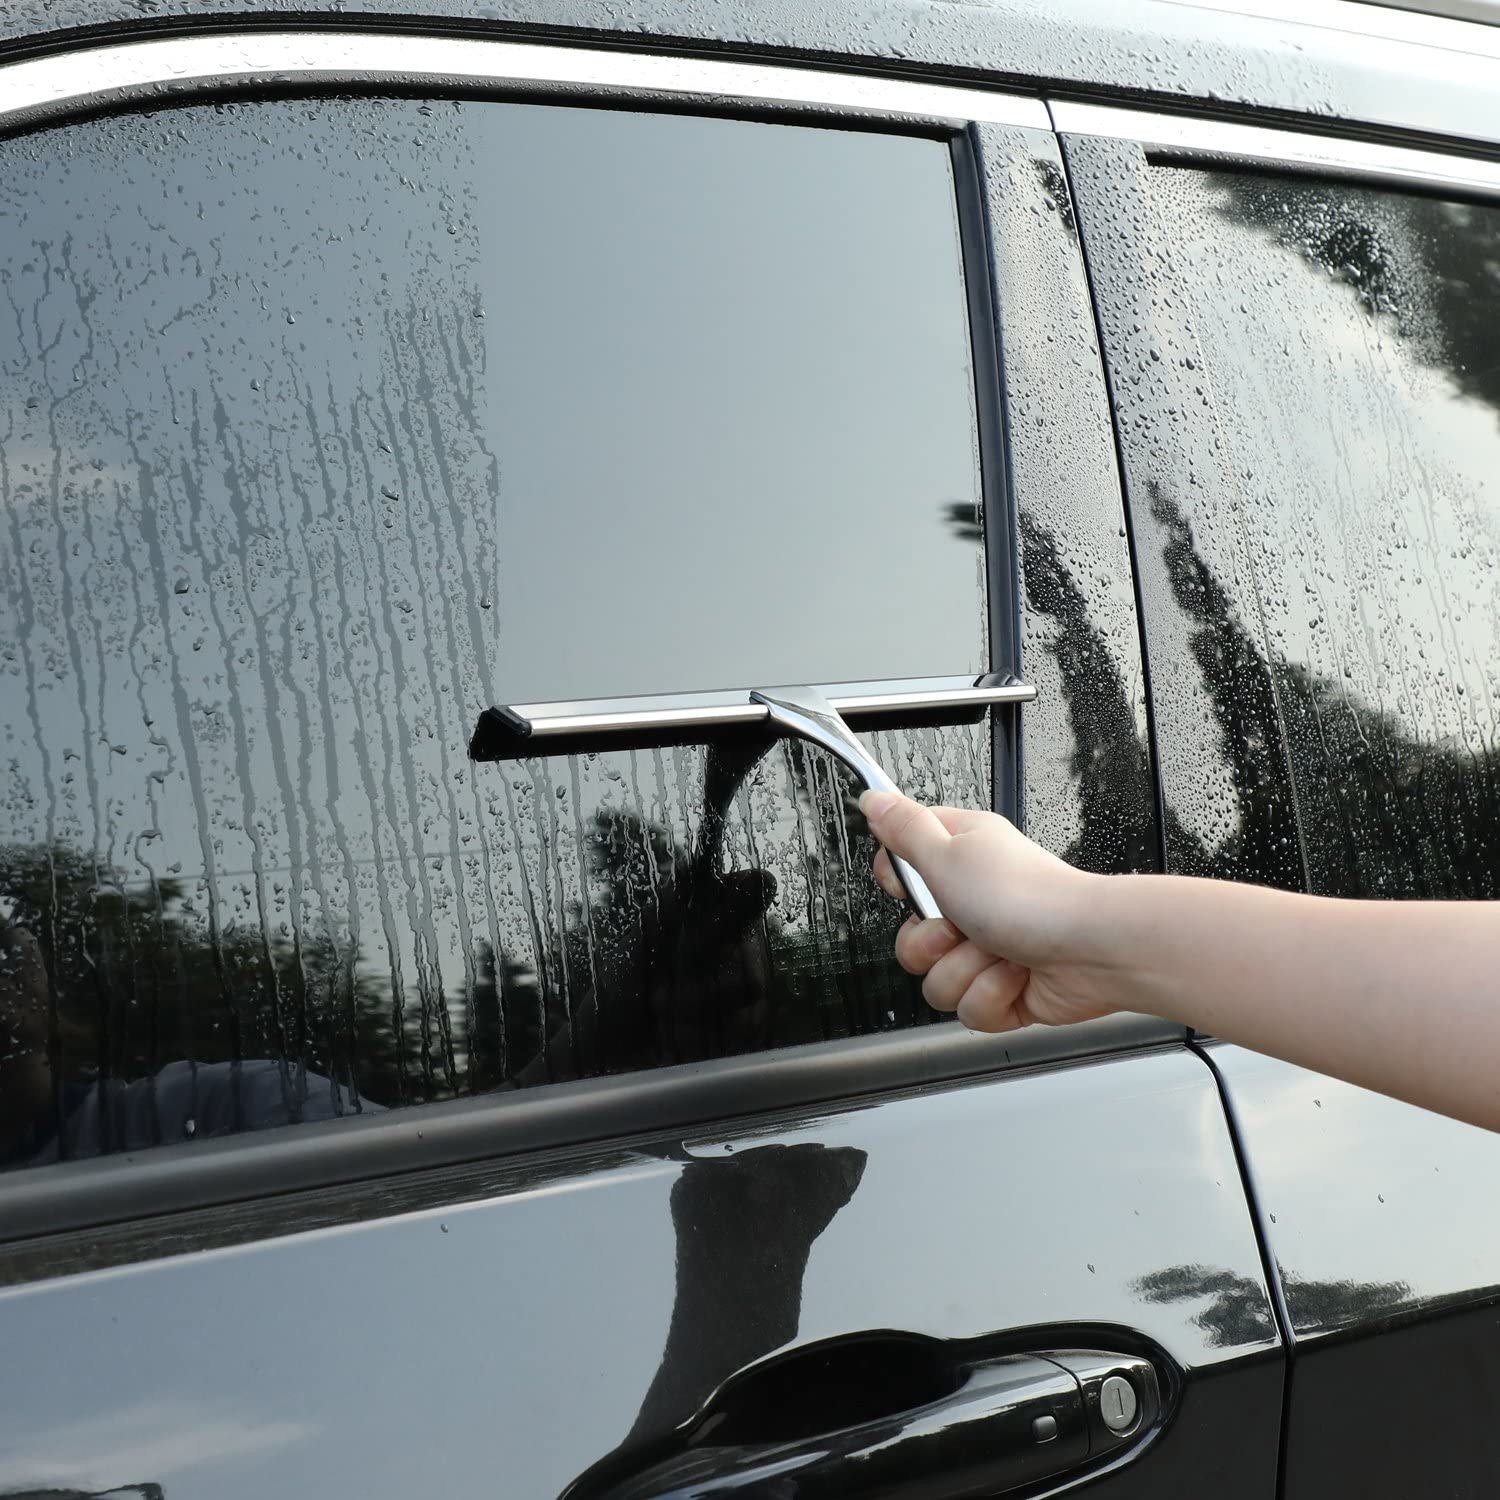 person squeegeeing a car window